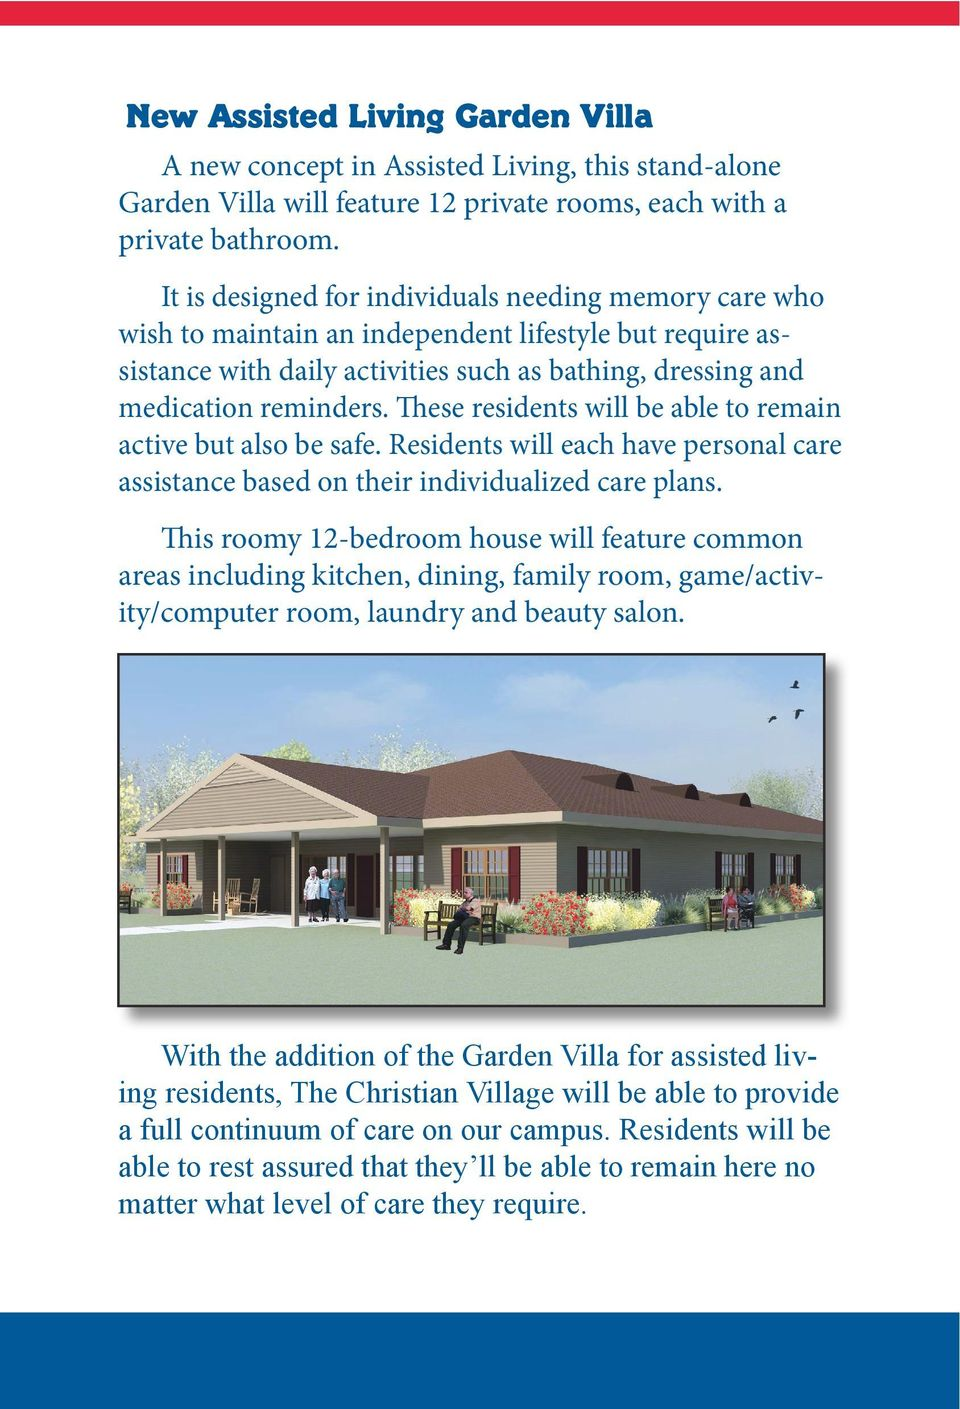 These residents will be able to remain active but also be safe. Residents will each have personal care assistance based on their individualized care plans.